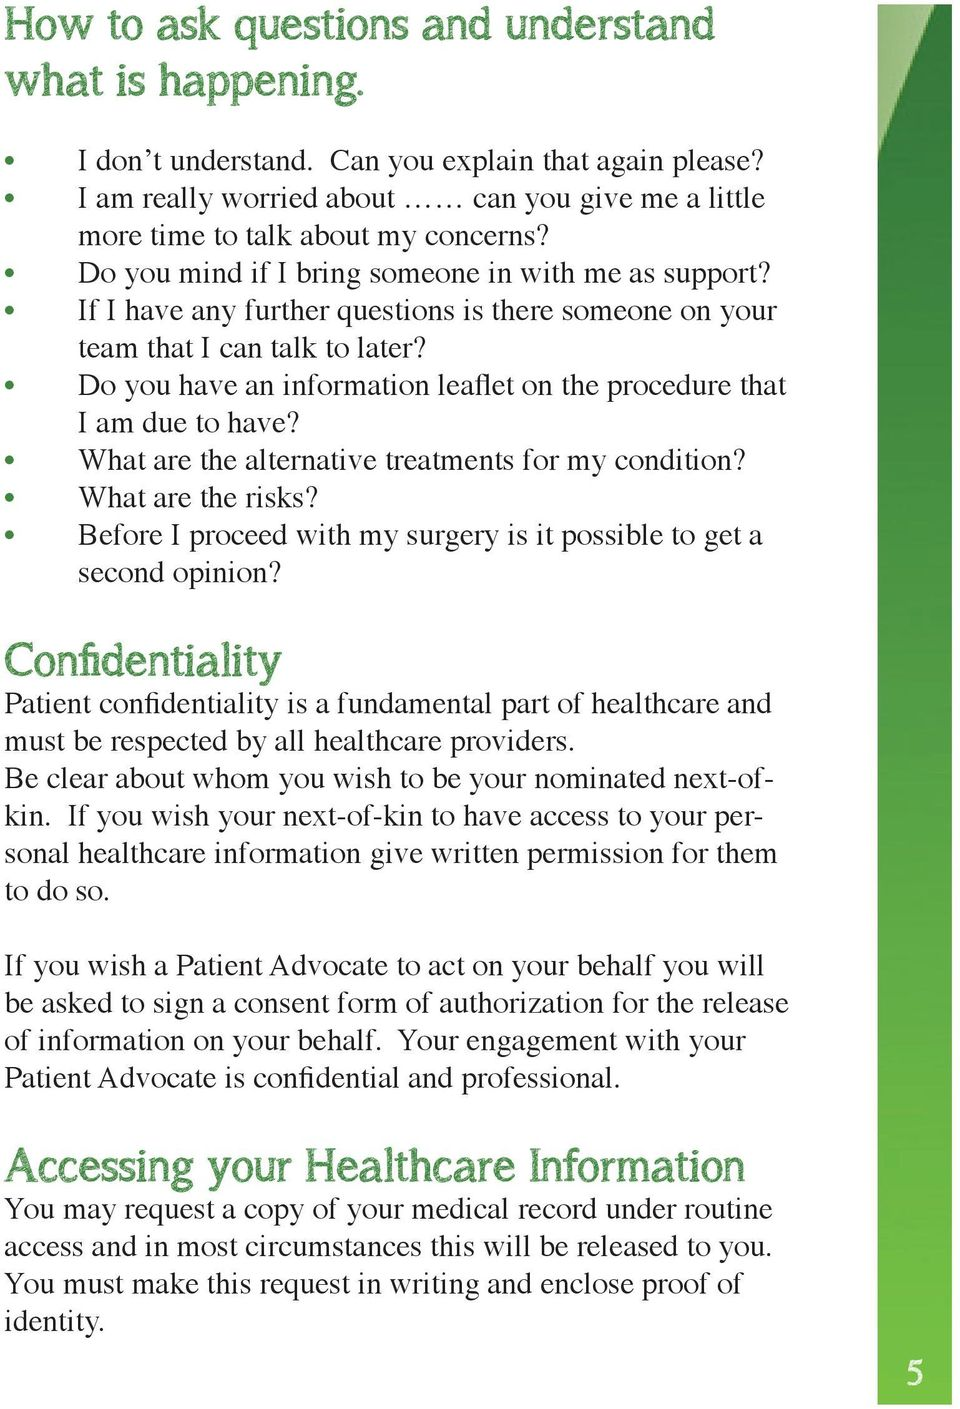 Do you have an information leaflet on the procedure that I am due to have? What are the alternative treatments for my condition? What are the risks?